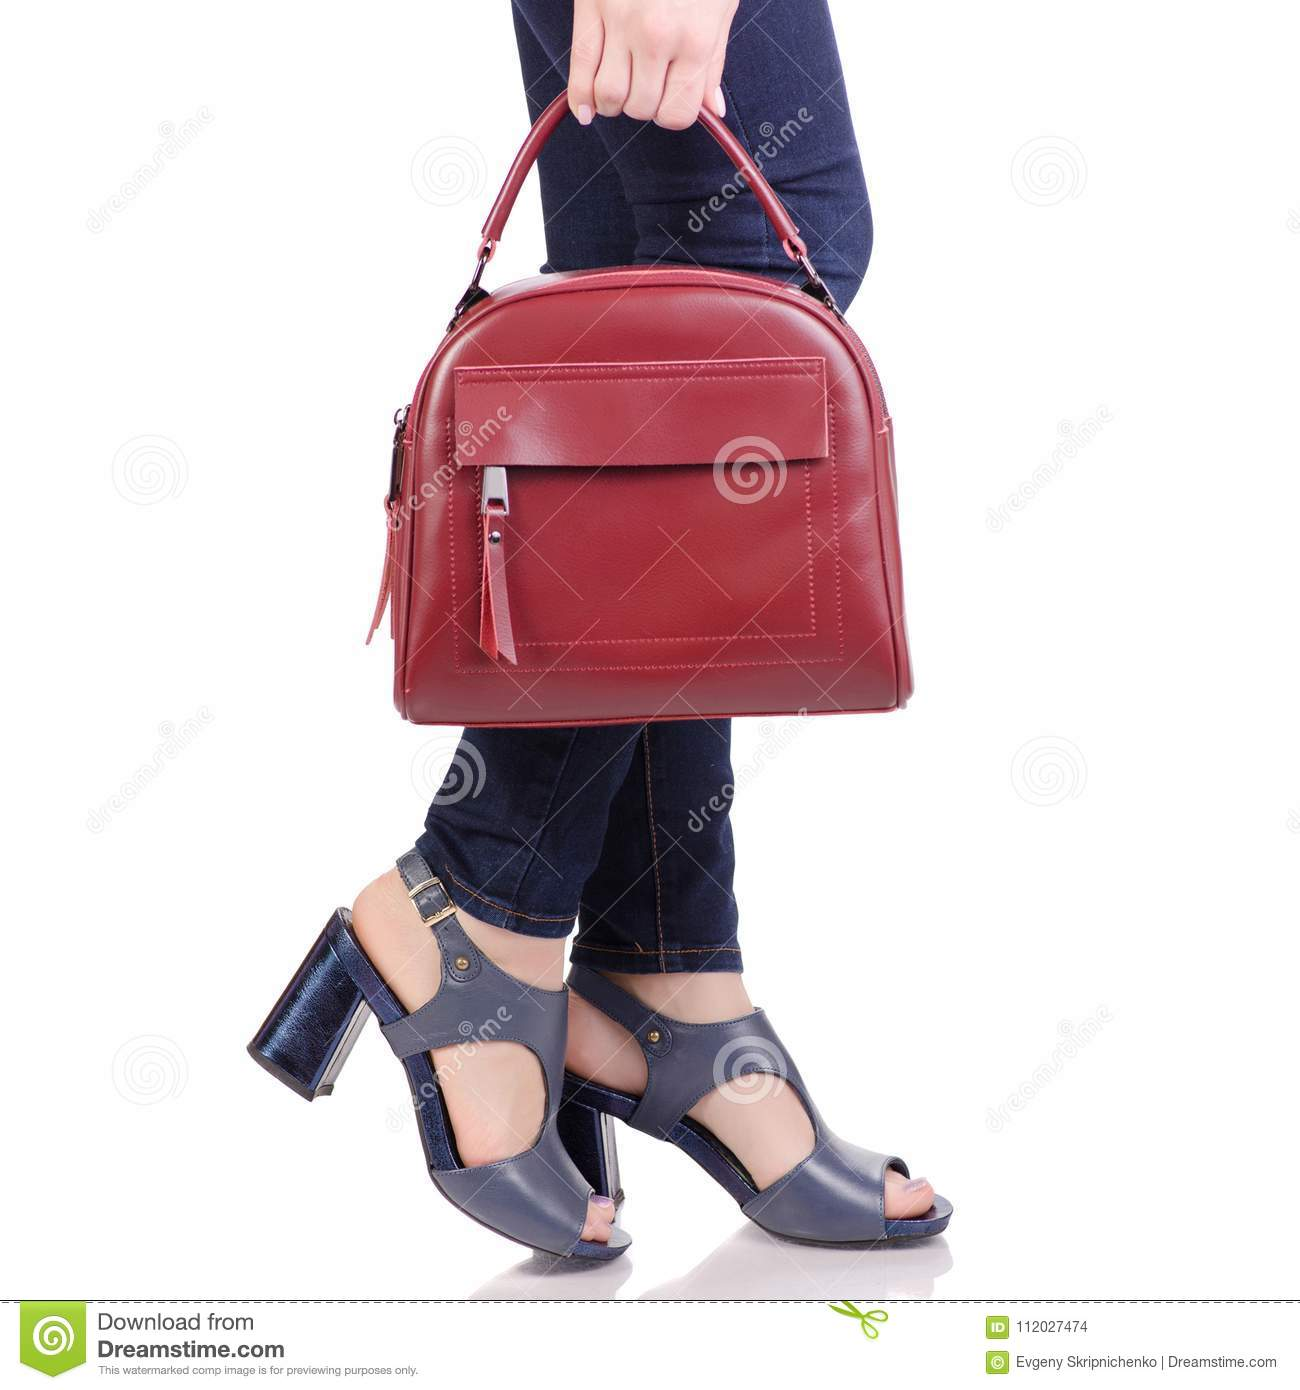 ed9ff1981 Female legs in jeans and in blue sandals shoes with red leather bag handbag  fashion beauty shop buy on white background isolation